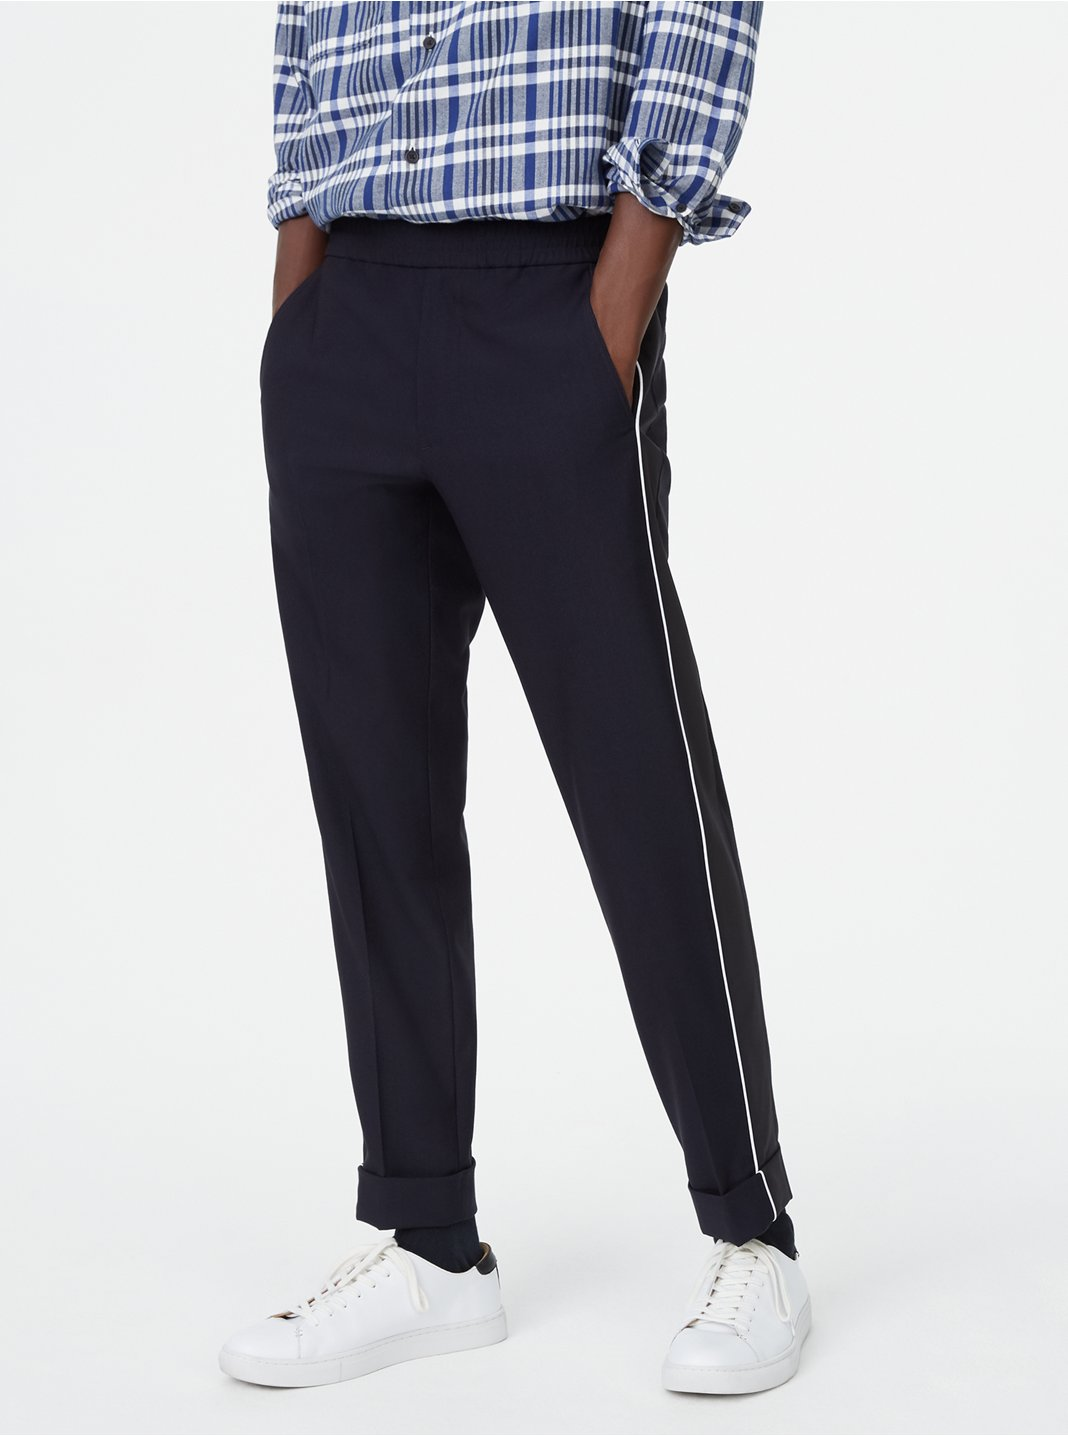 Piped Elastic Pant